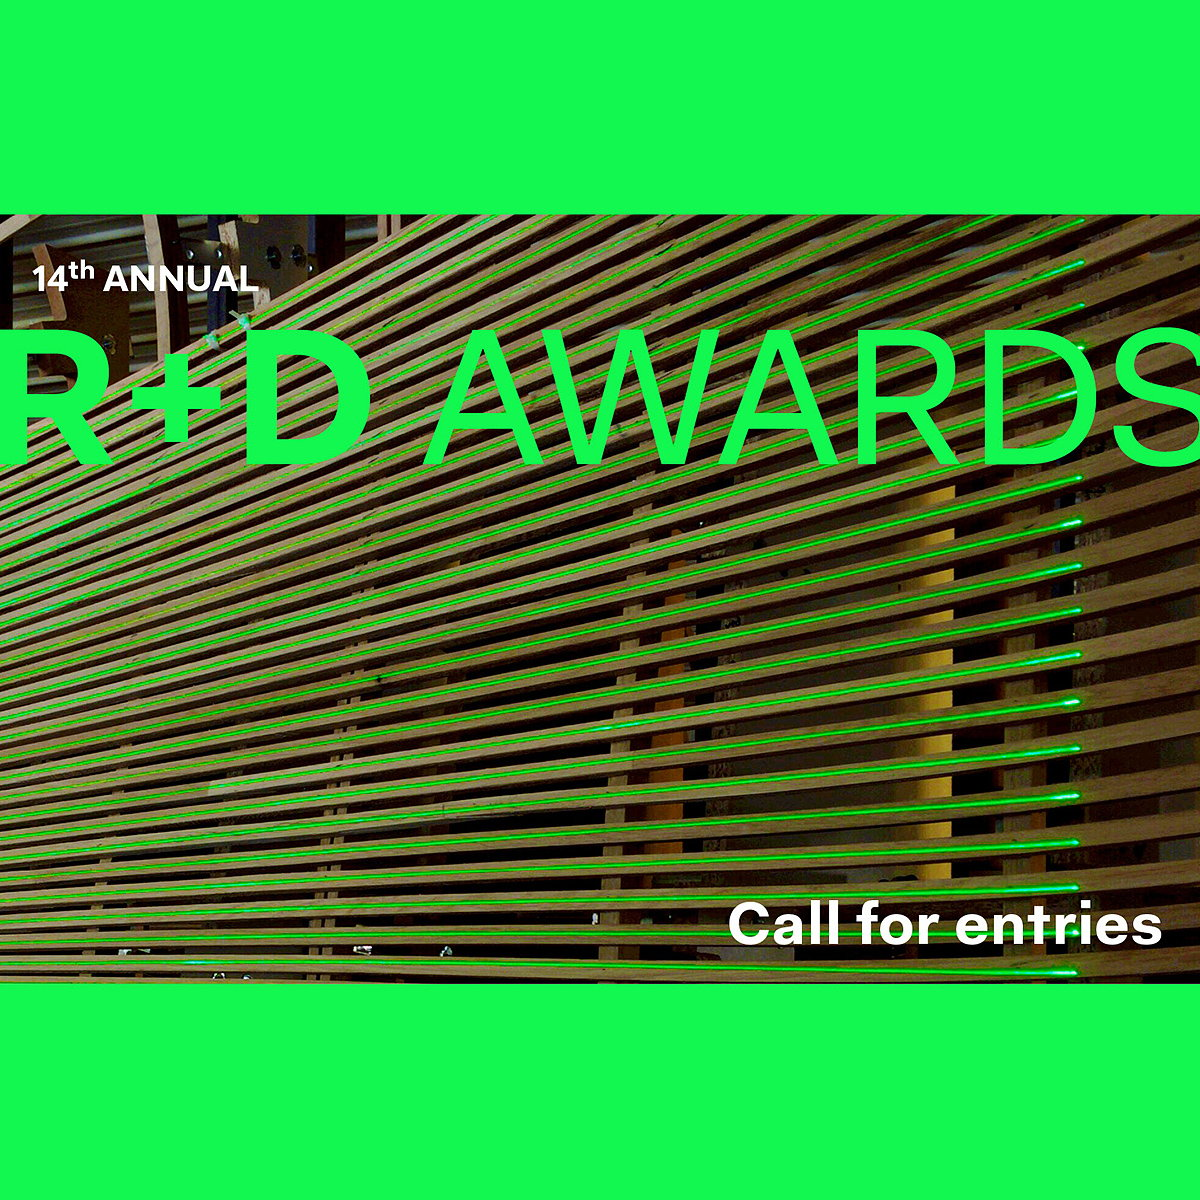 R+D Awards 2020 - Call for Entries